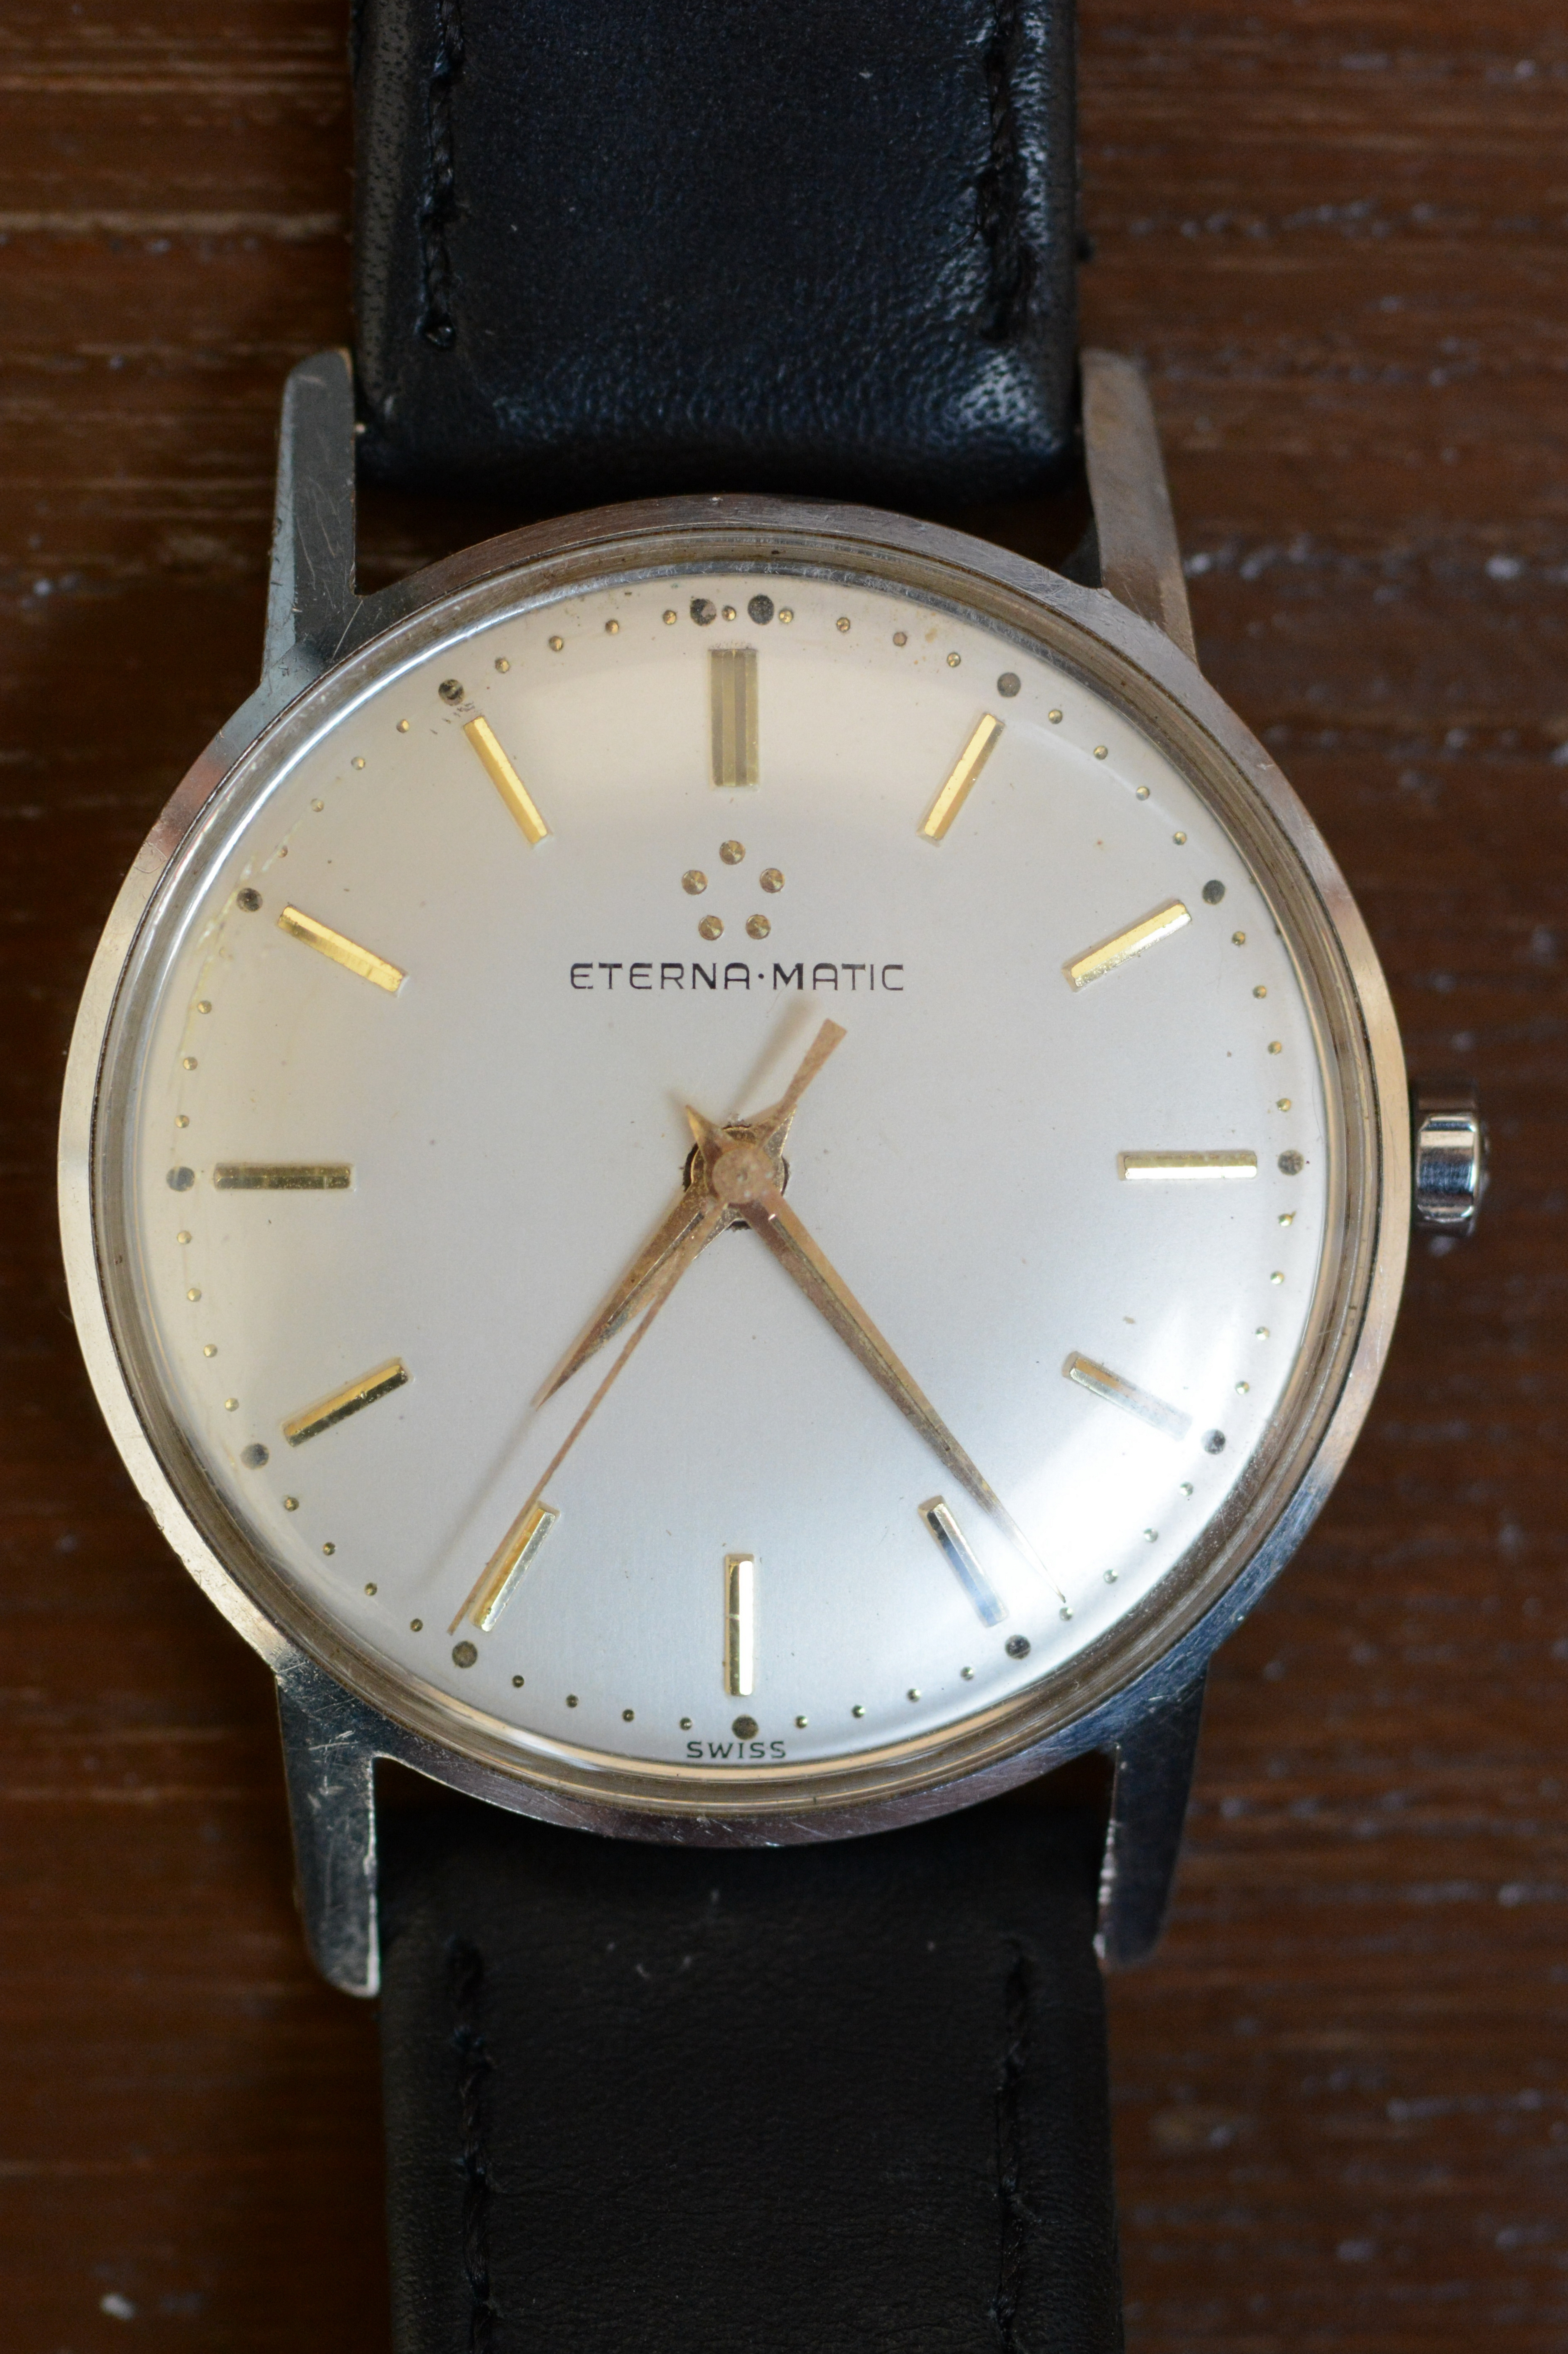 Eterna Matic Kontiki 1958 Eterna-matic Cal 1414u 1958